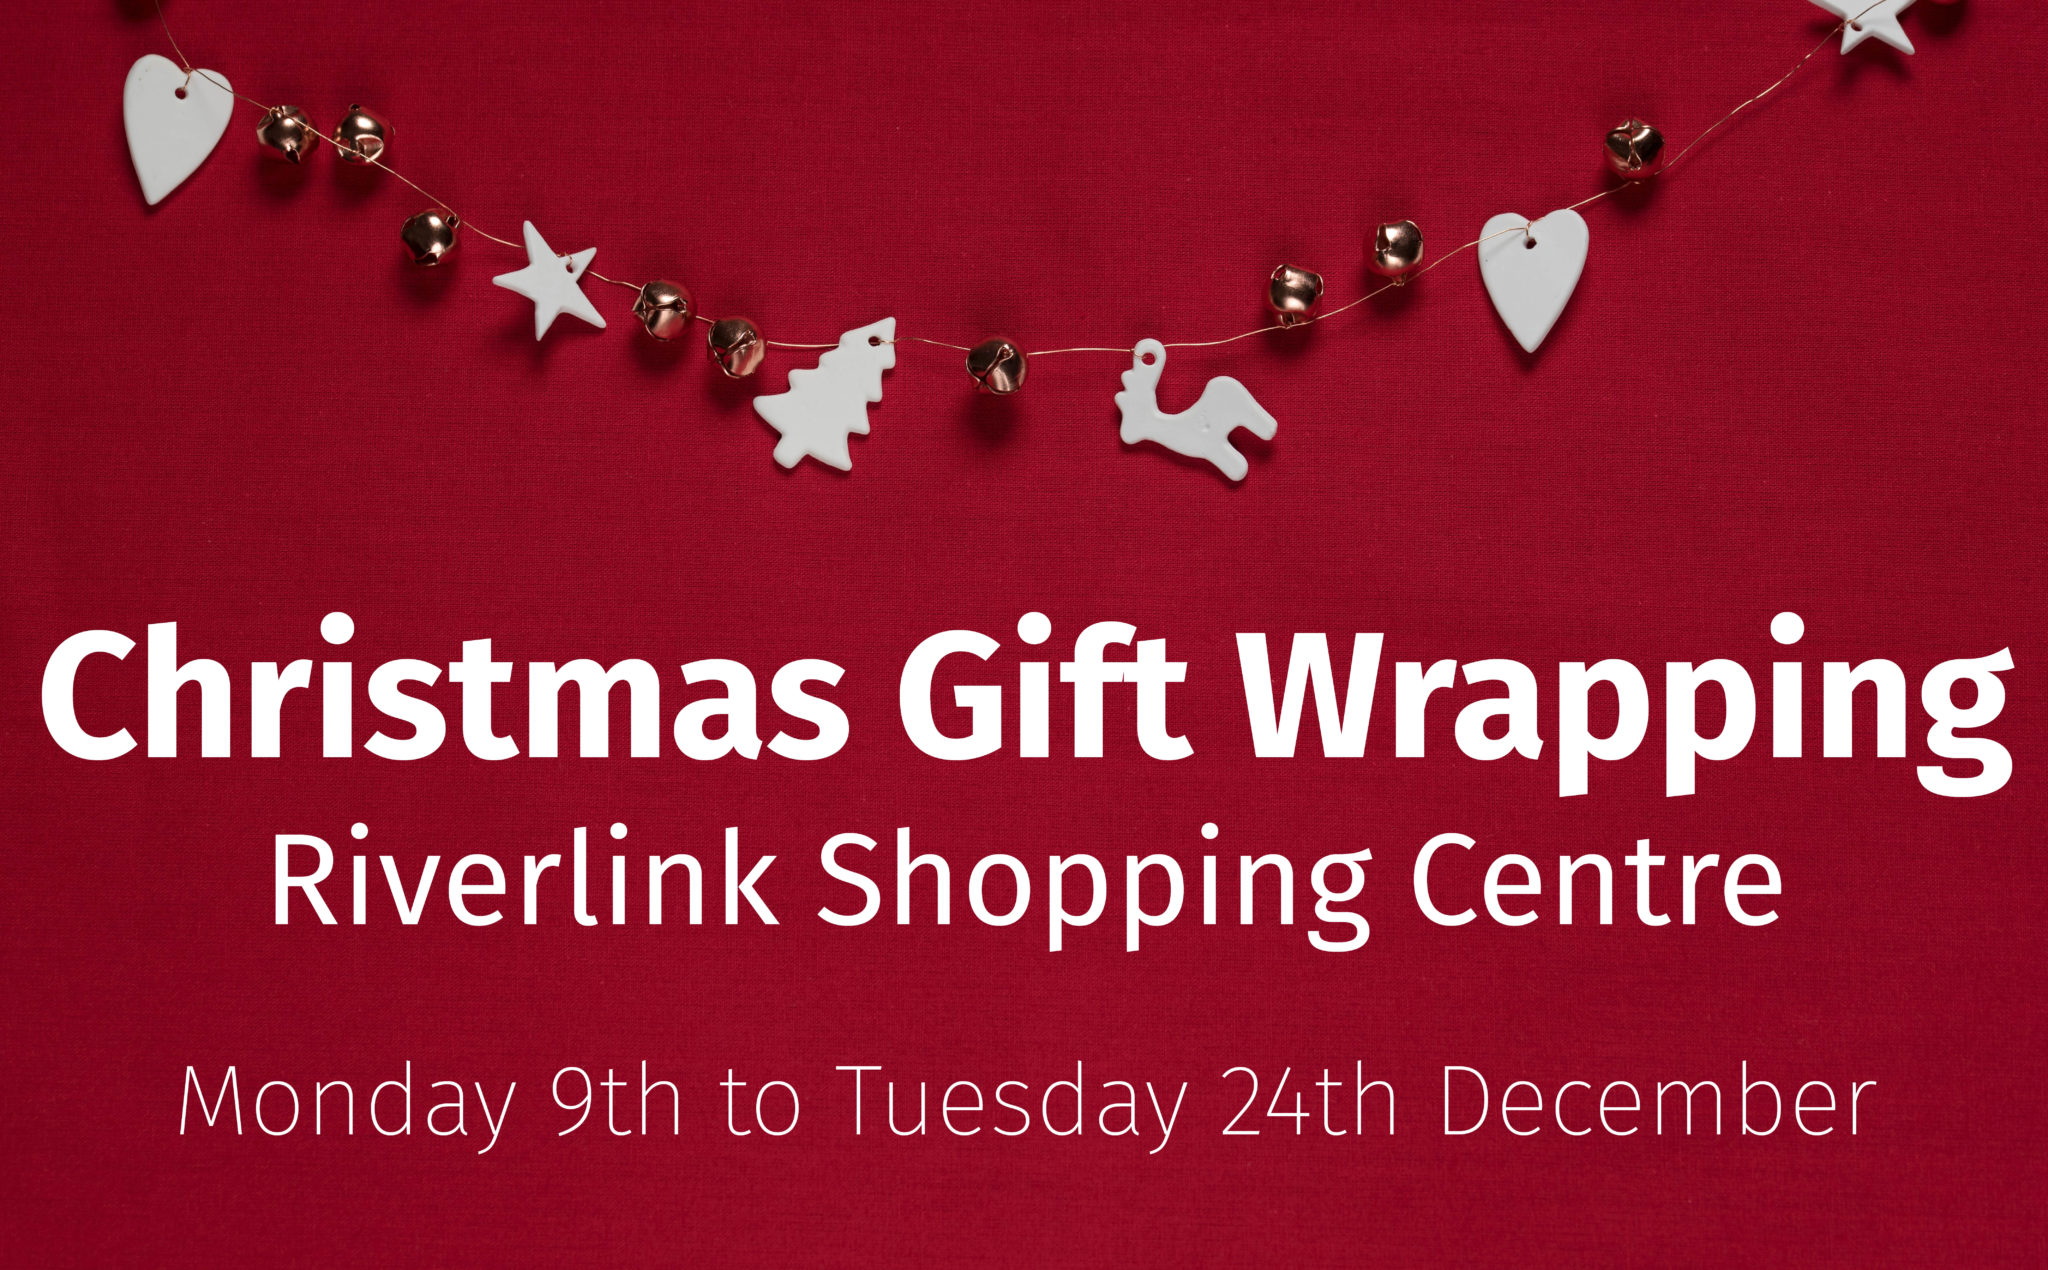 Christmas Gift Wrapping Riverlink